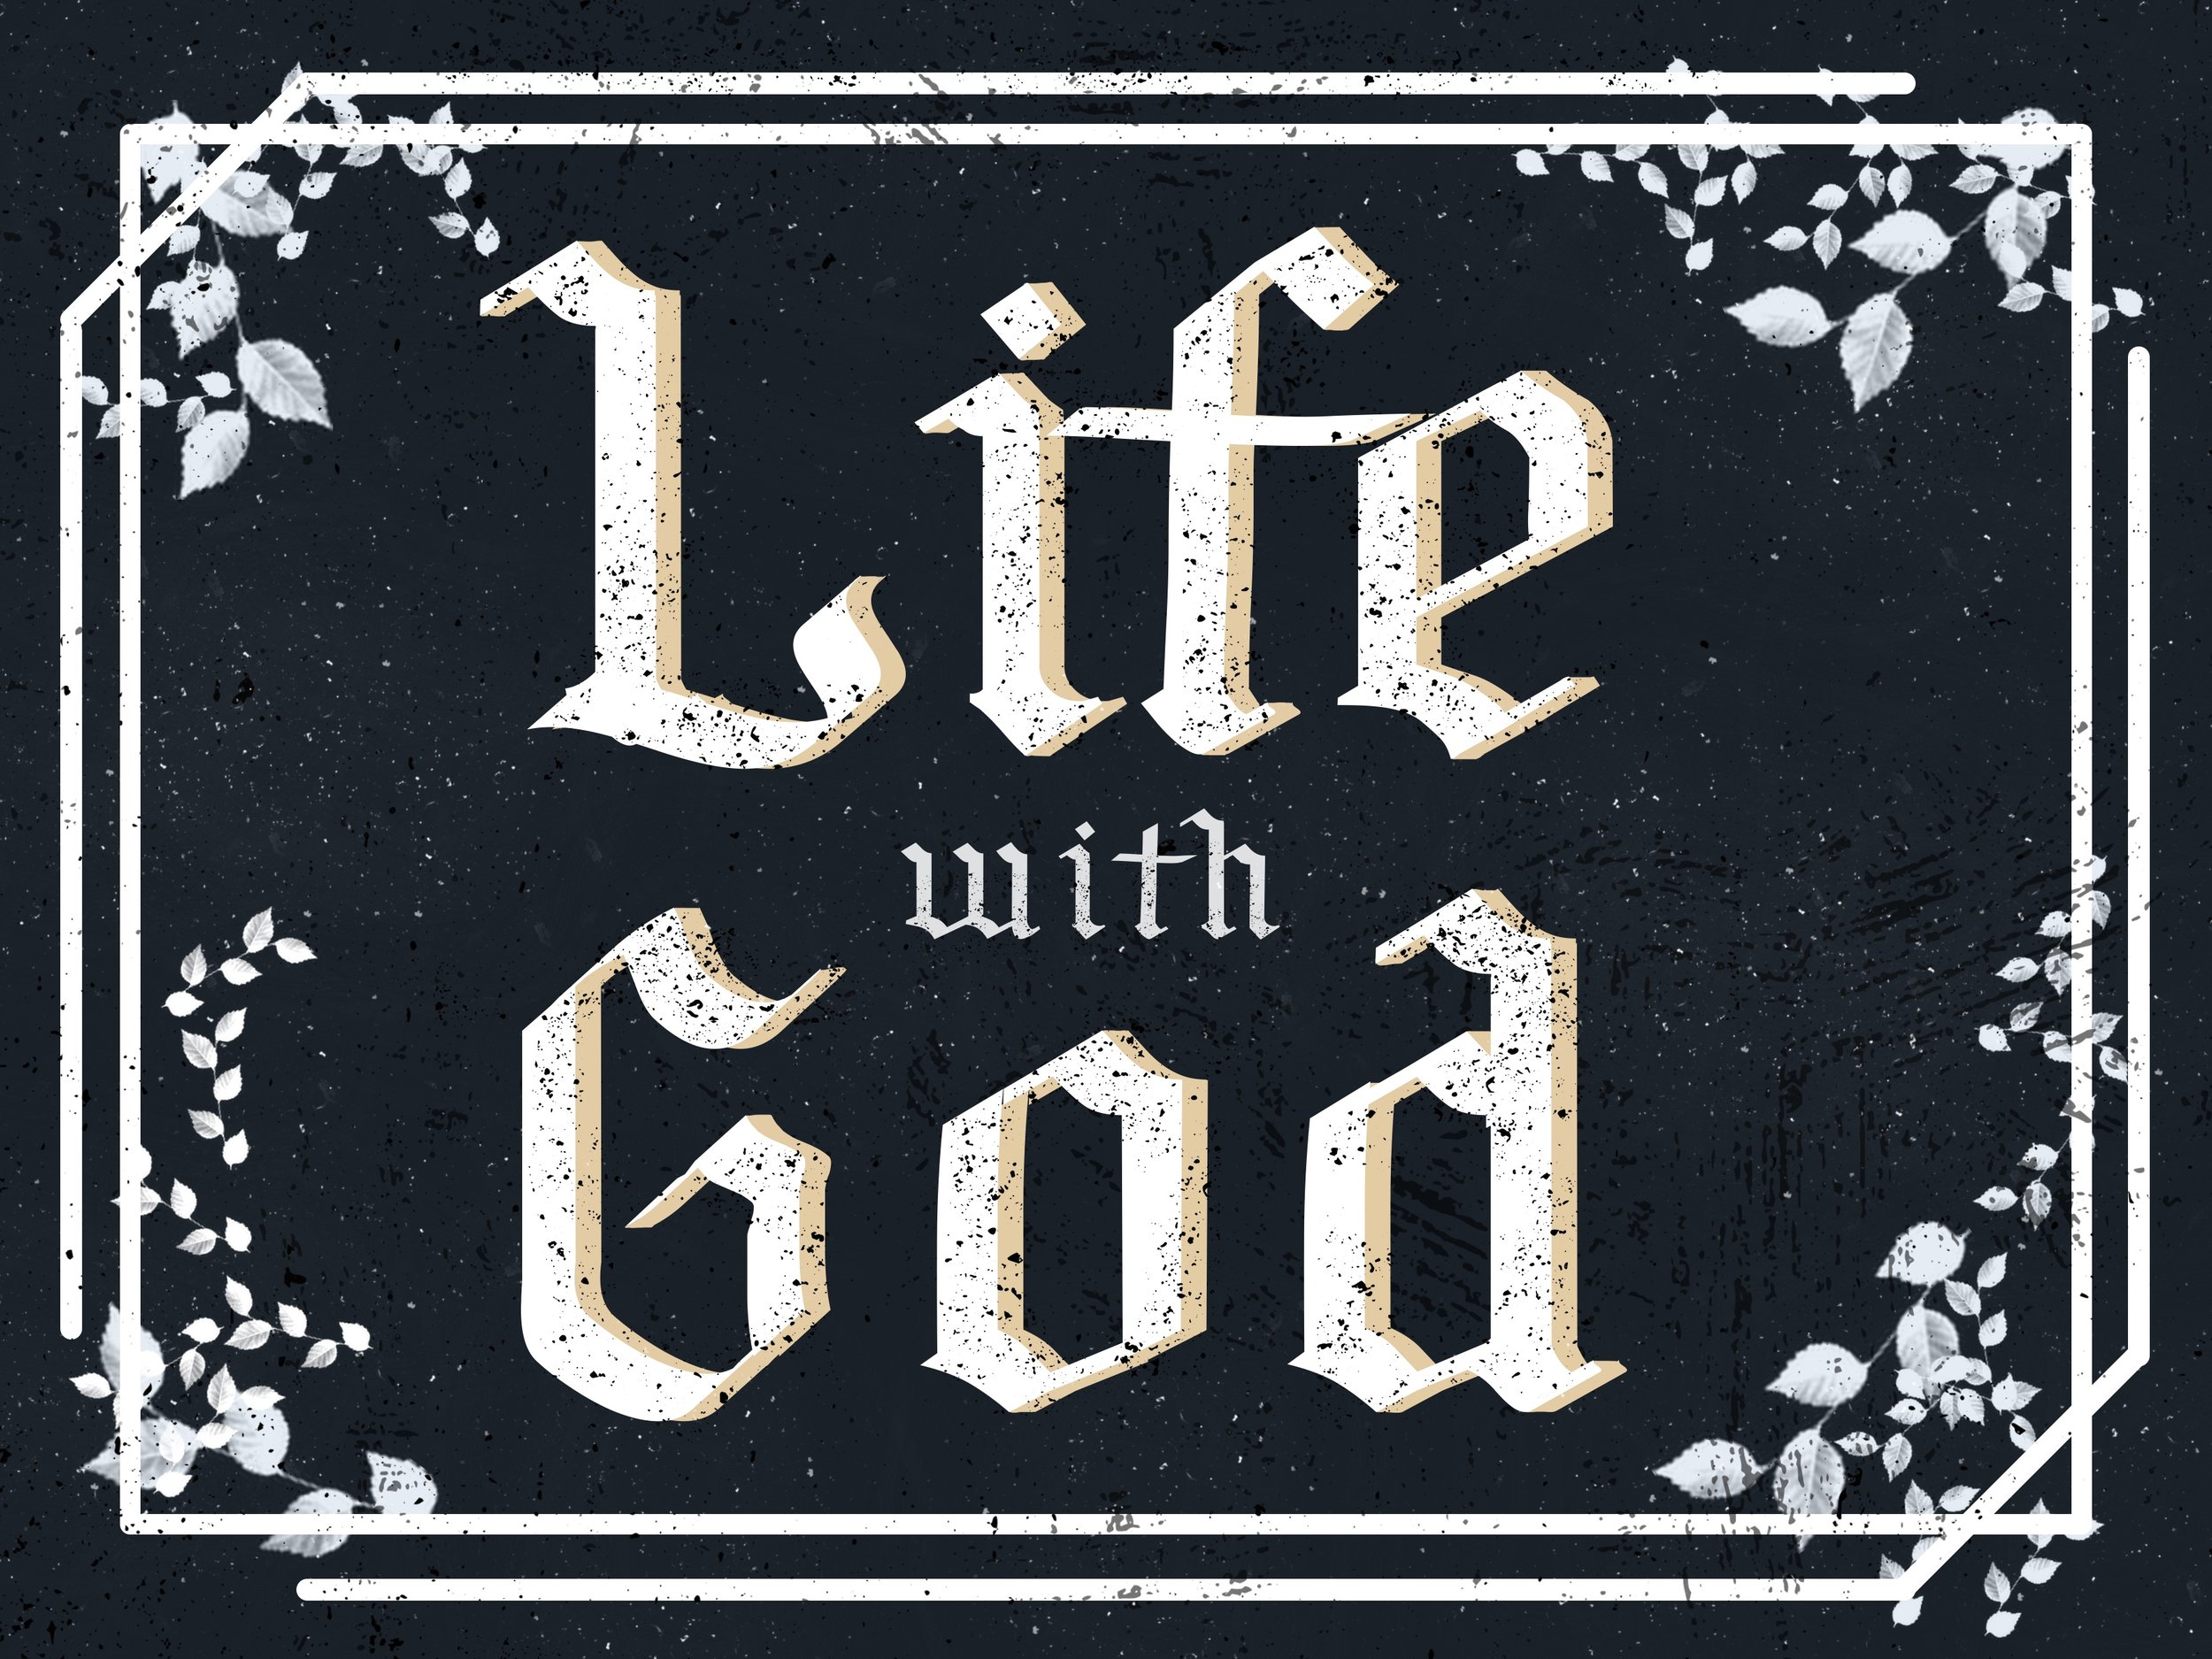 LIFE WITH GOD   FEB 26 - APR 2